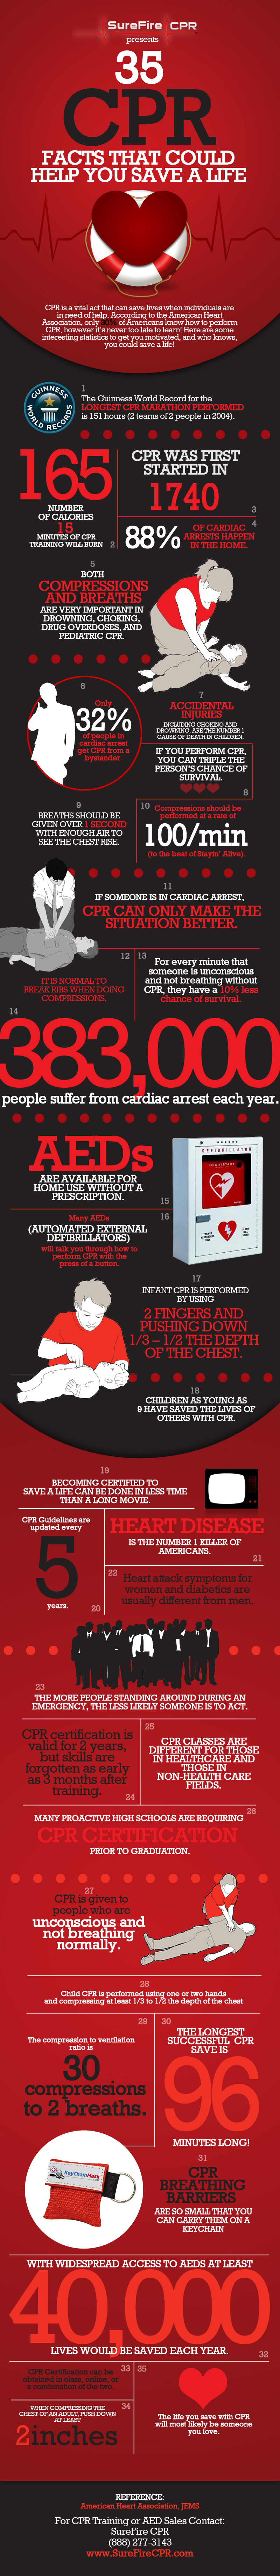 CPR Statistics and Facts